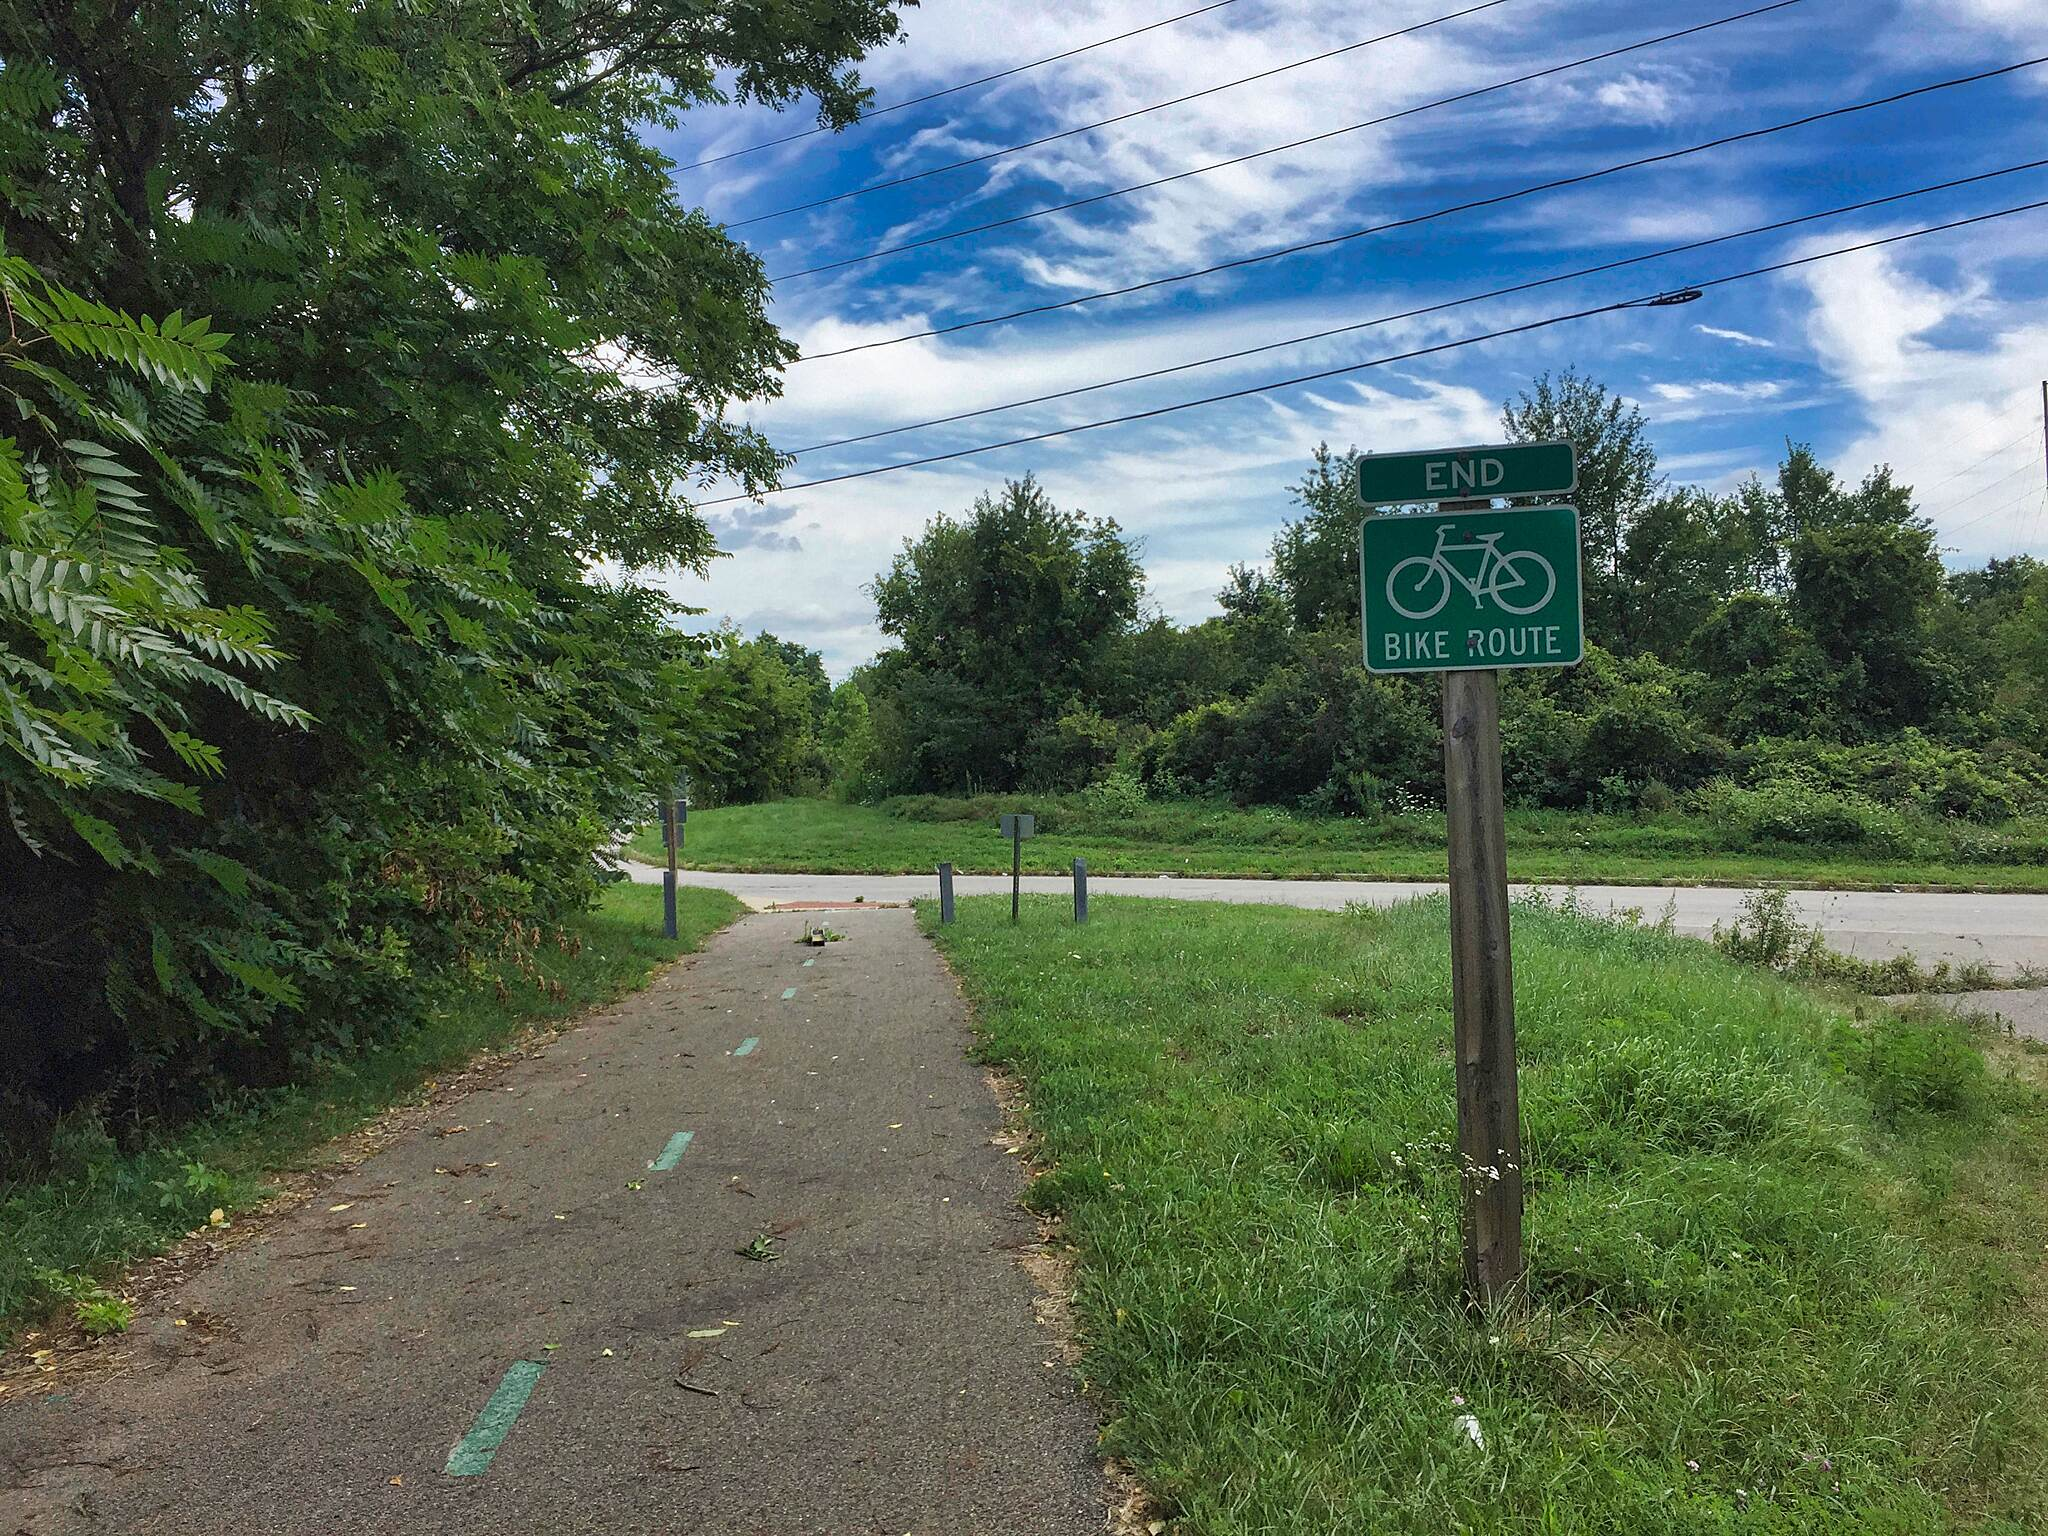 Garrett Wonders Bike Trail Garrett Wonders Trail Southern Terminus 2017 Here is the current southern end of the Garrett Wonders Bike Trail at the corner of Burton Street, SE and Thomas Road, SE in Warren, Ohio.  This trail could be connected to the Niles Greenway.  July 29, 2017.